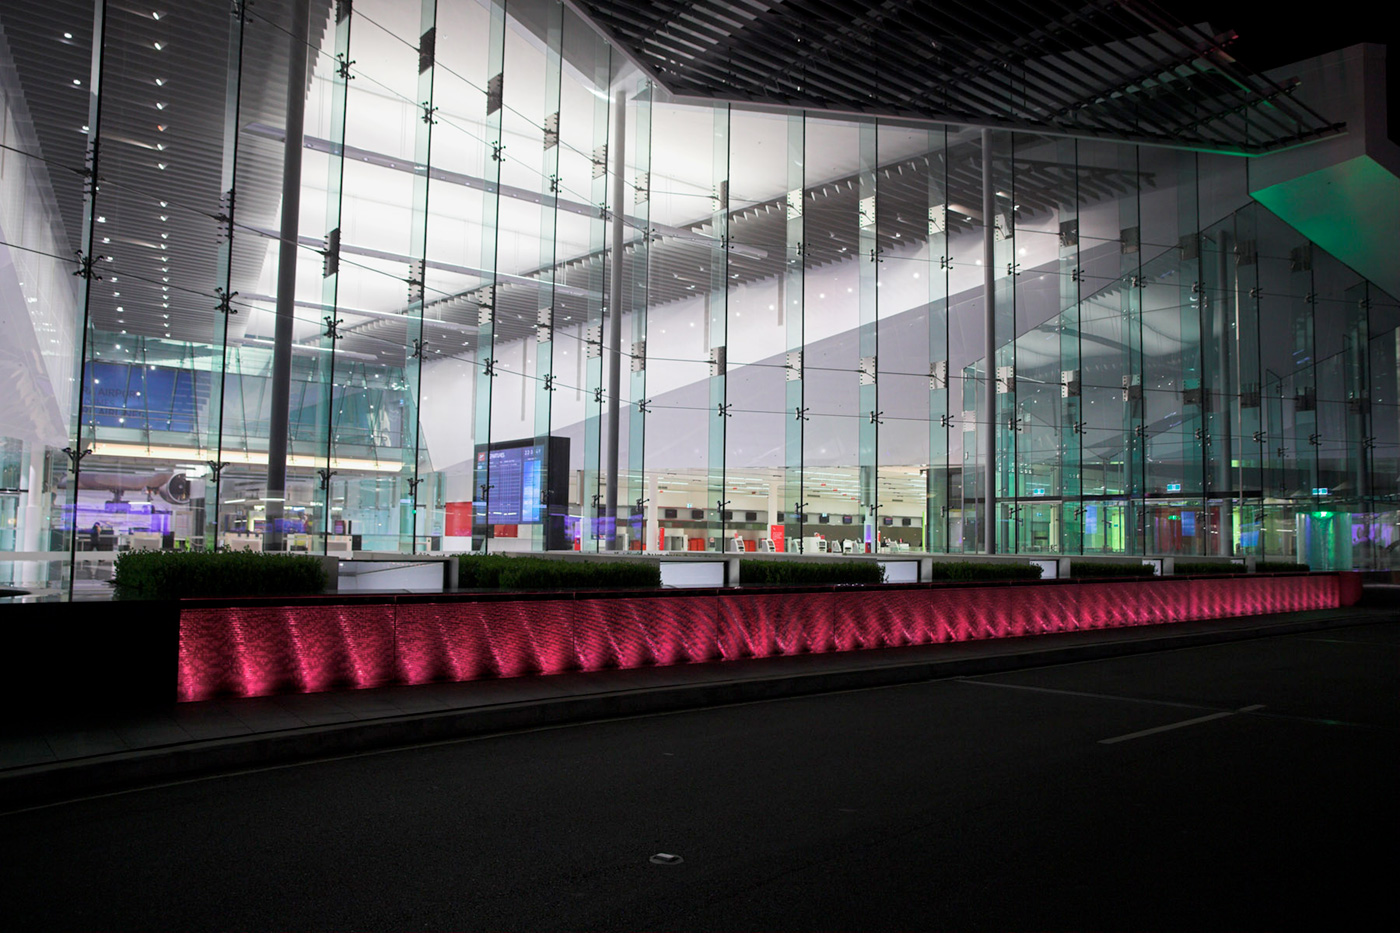 Canberra Airport Water Feature LED Lighting and Building Facade Lighting